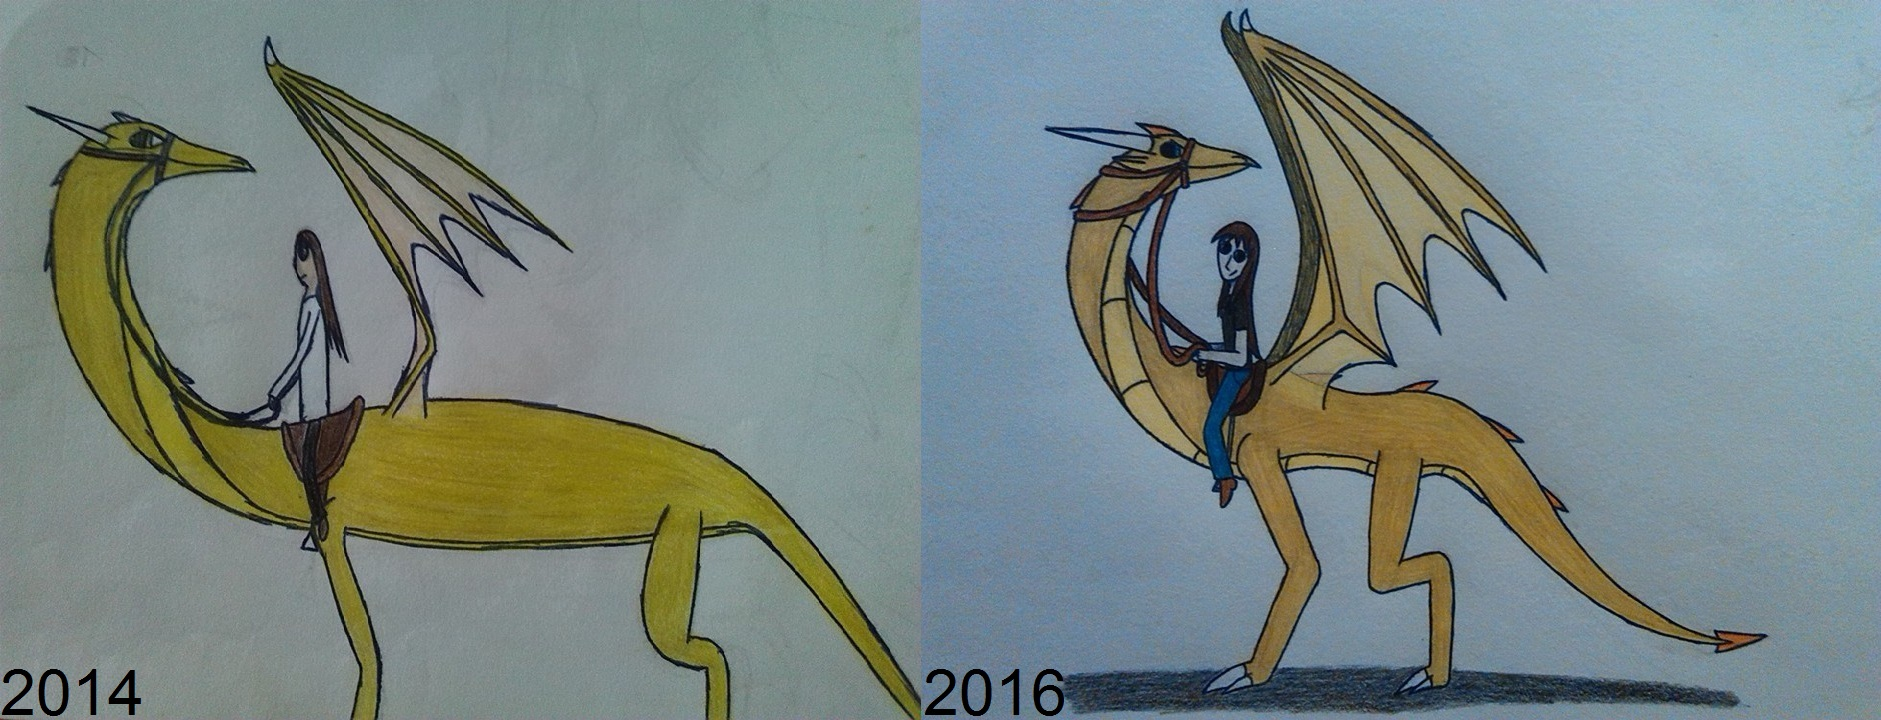 drawing_comparison__dragon_rider_by_drag